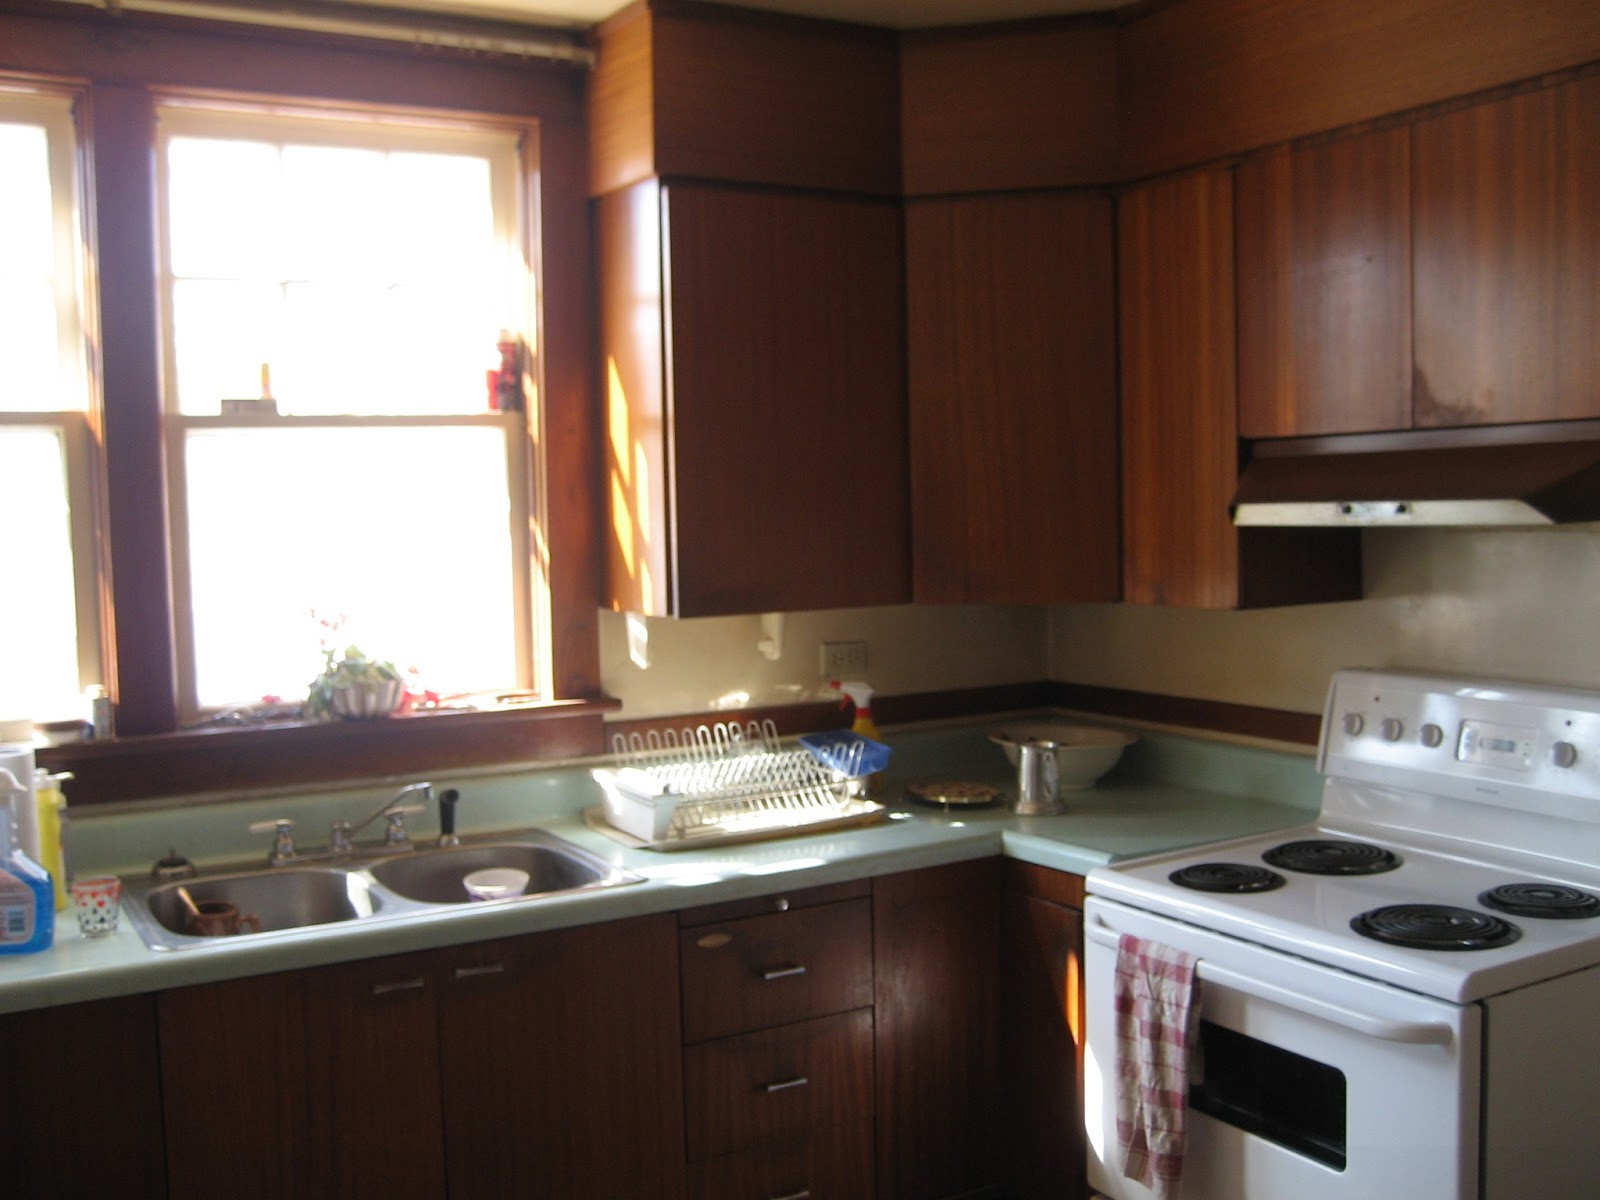 Old Looking Kitchen Cabinets How To Make Old Kitchen Cabinets Look New Again